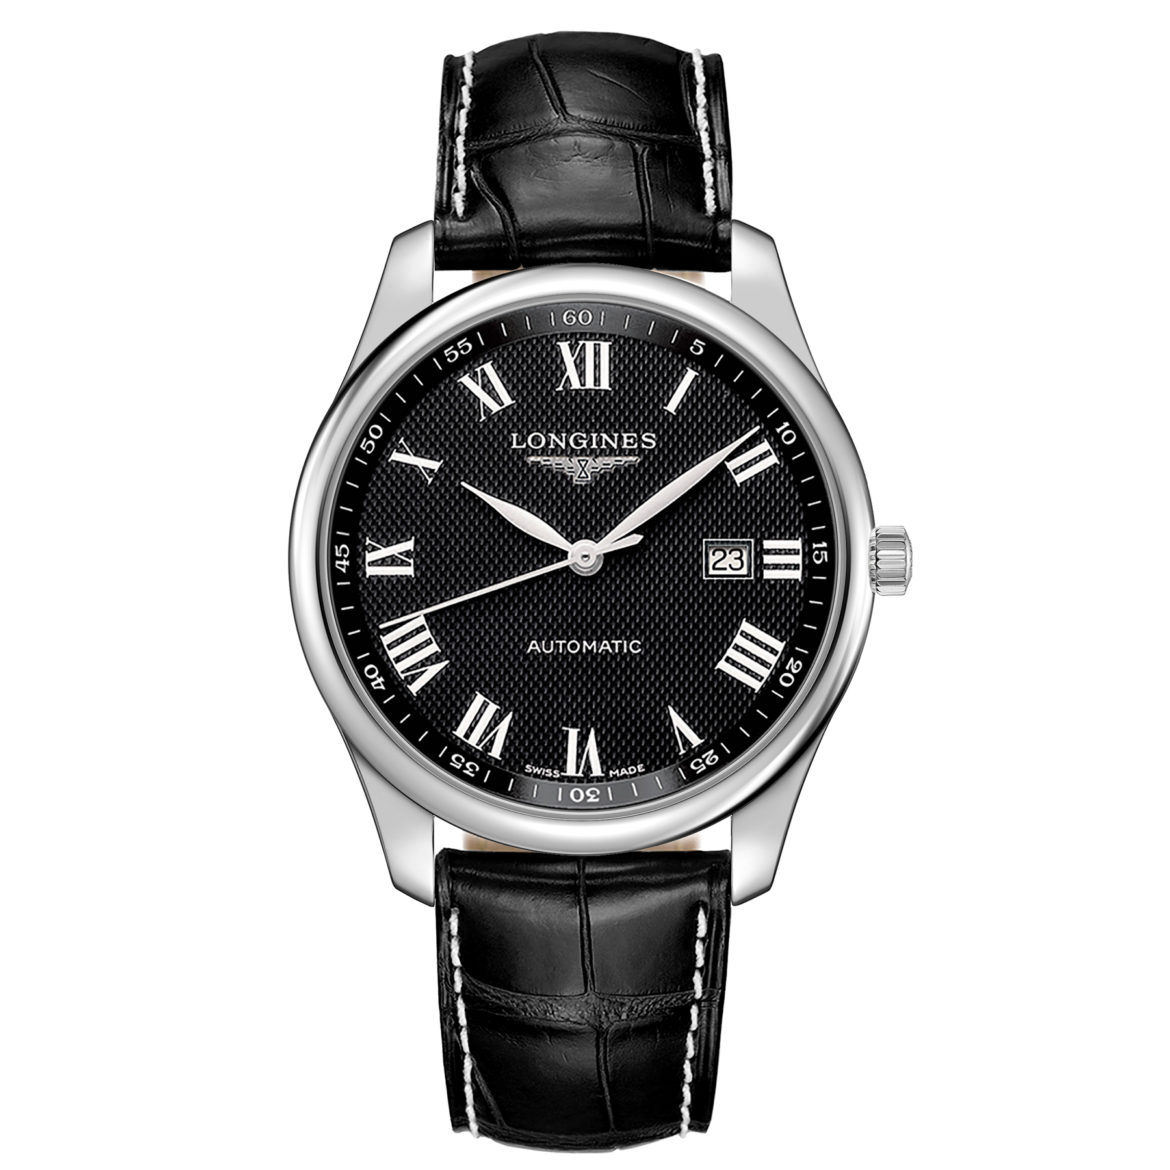 LONGINES</br/>The Longines Master Collection </br/>L28934517